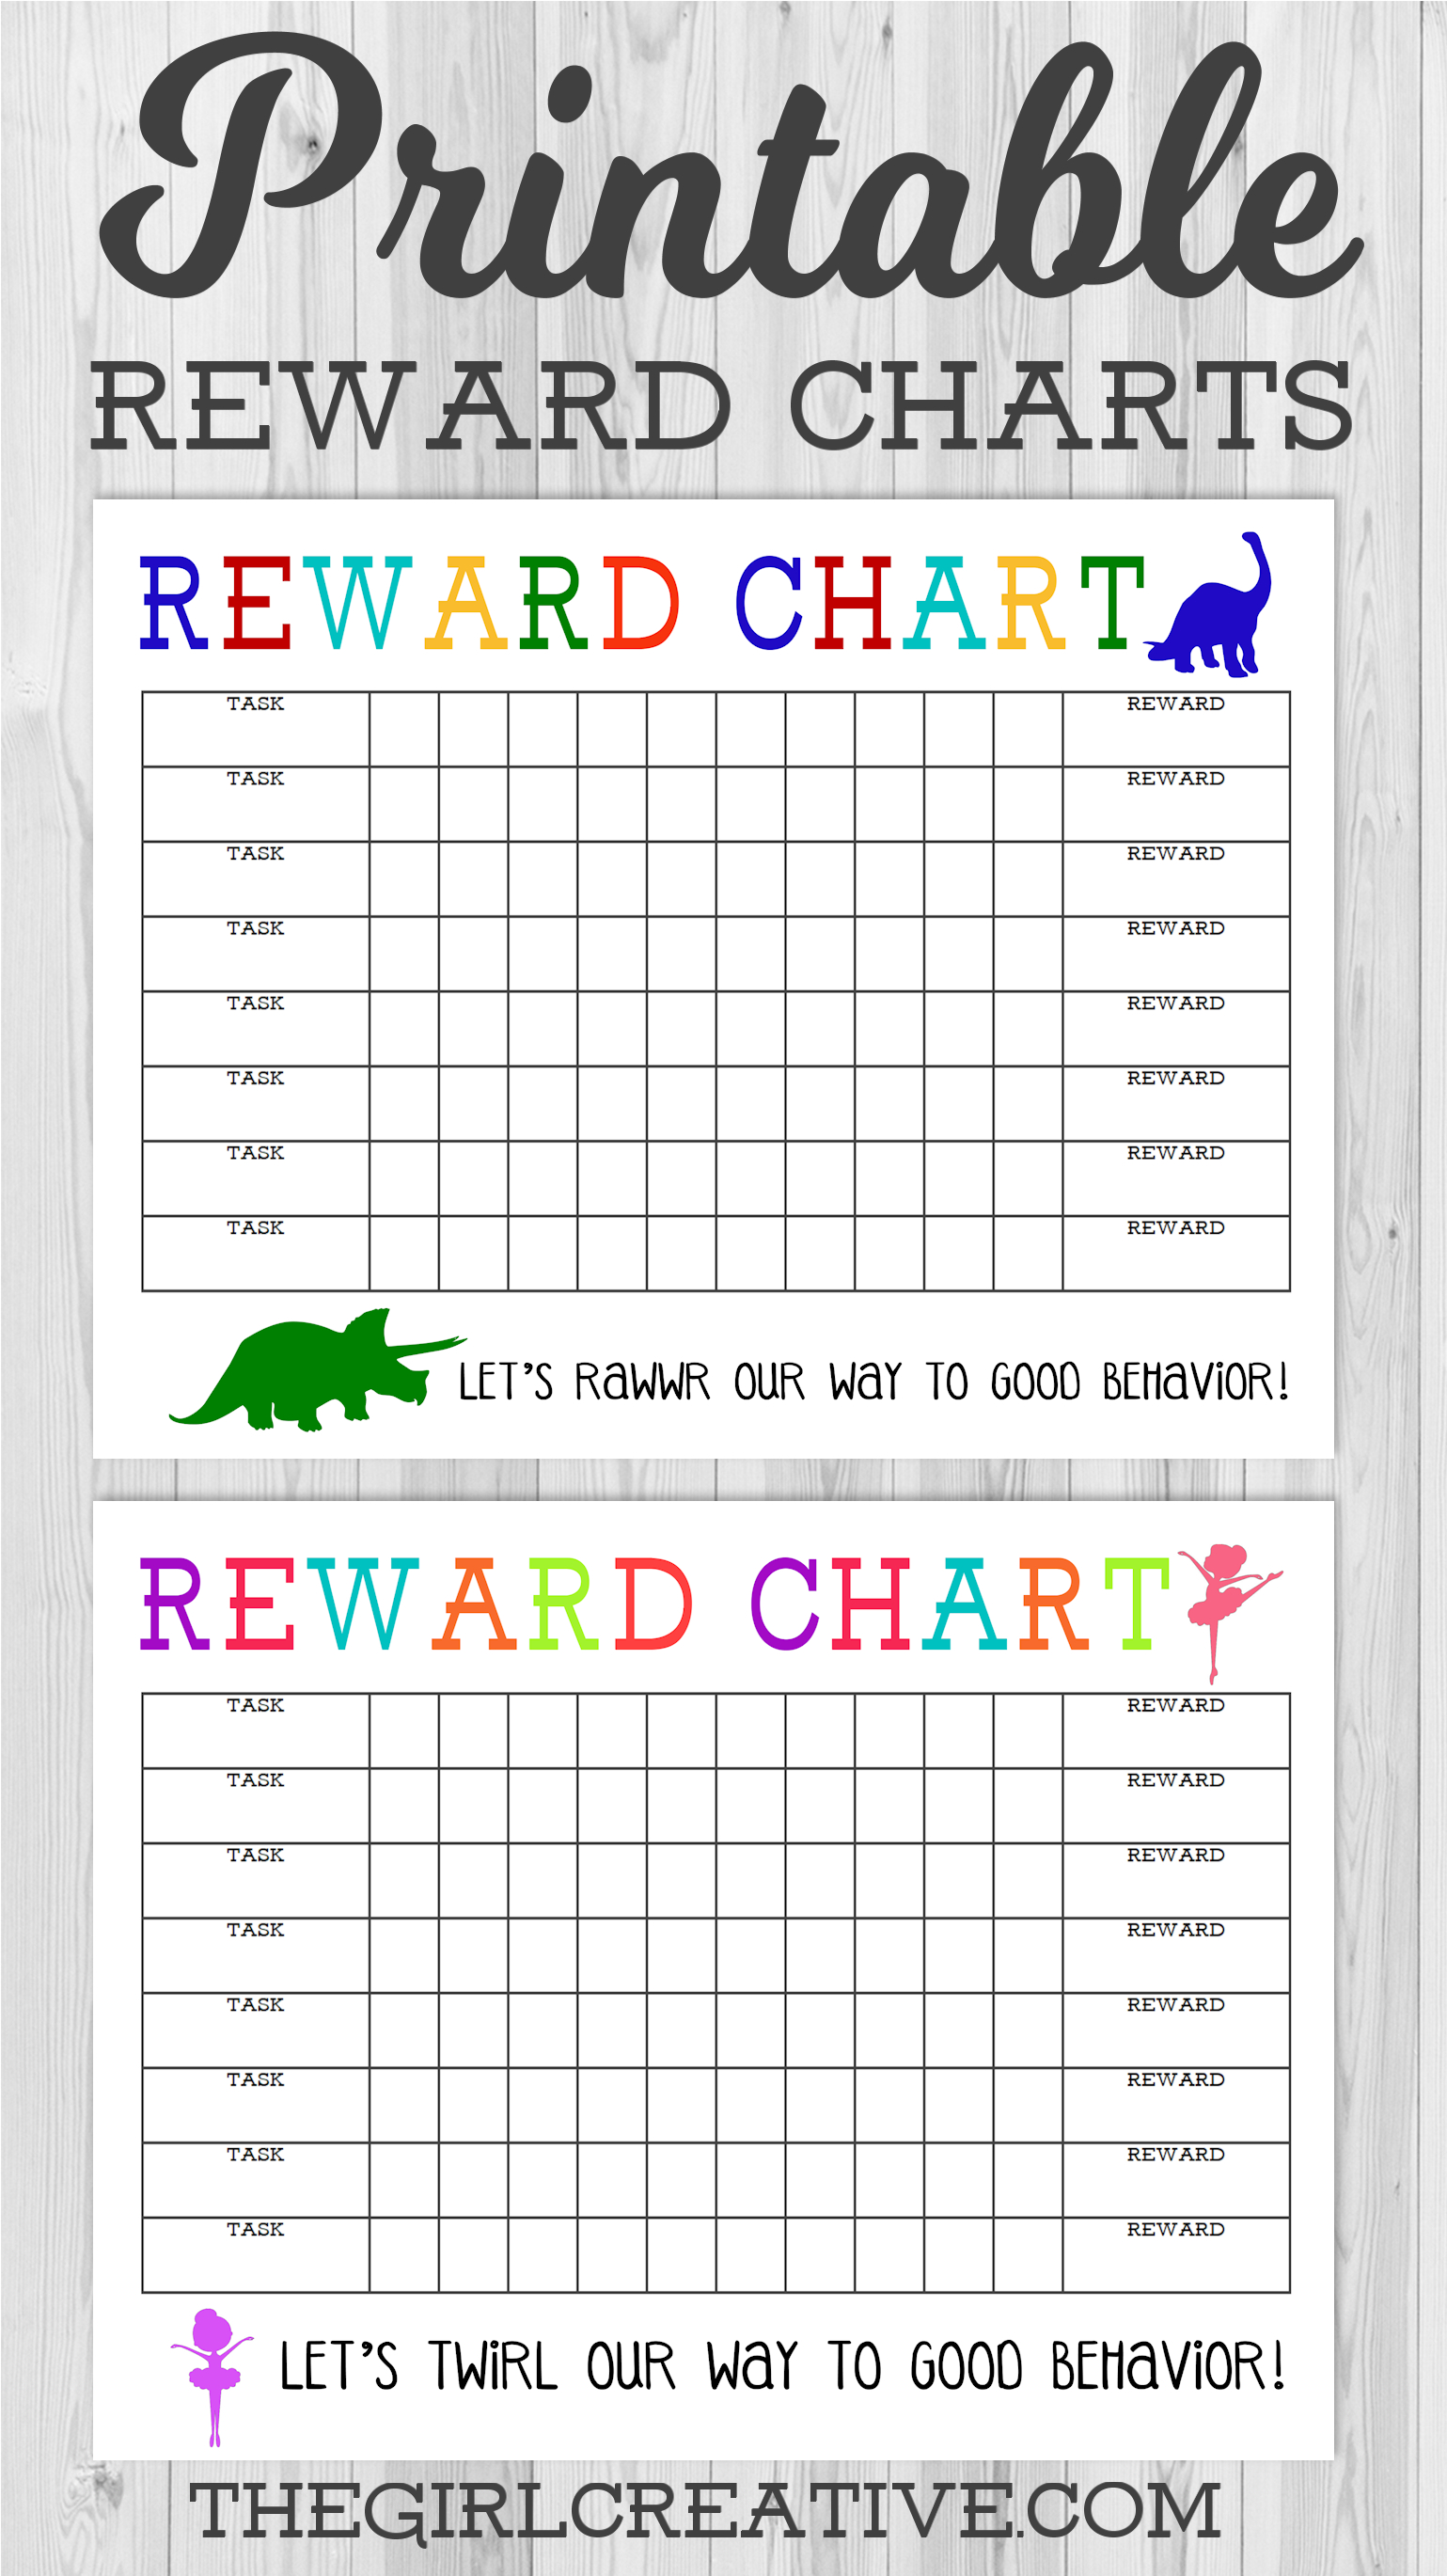 Printable Reward Chart | Share Today's Craft And Diy Ideas inside Behavior Charts For Kids Templates